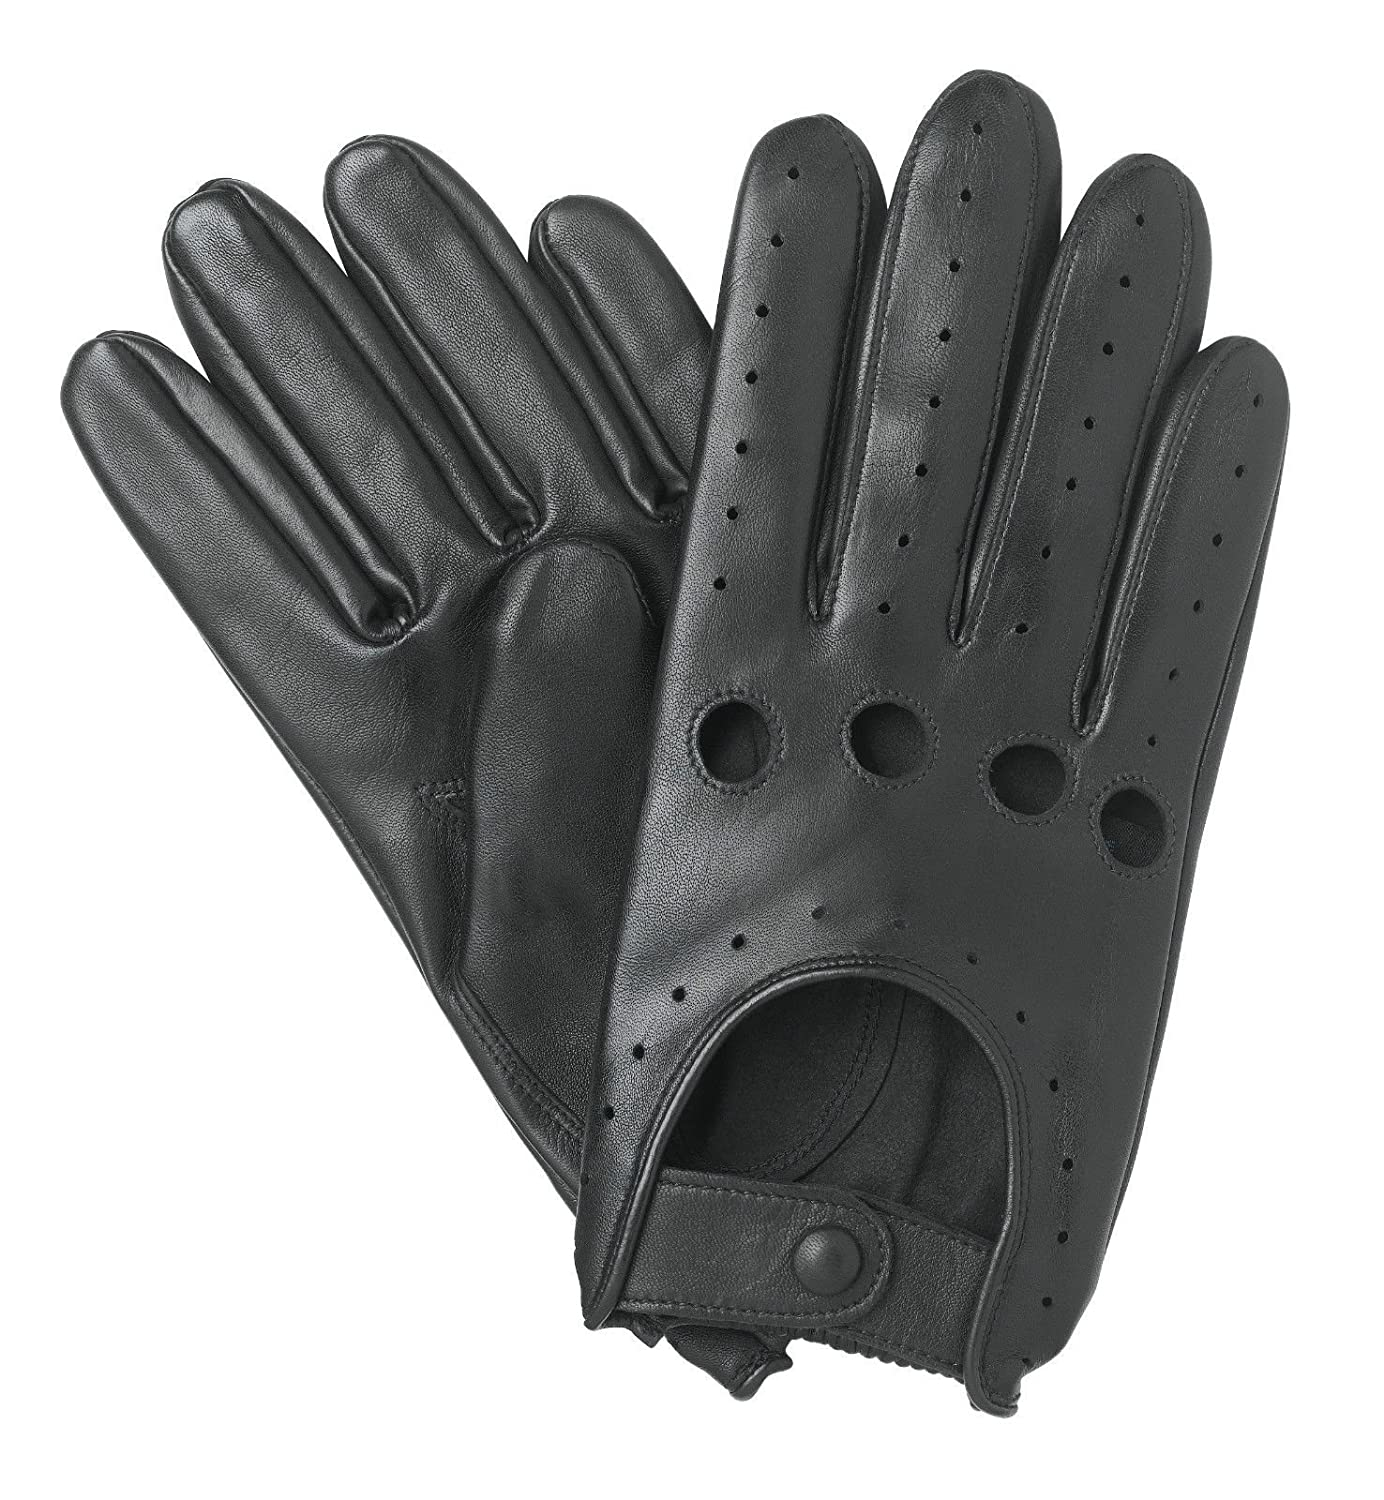 English leather driving gloves - Mens Driving Gloves 502 Slim Fit Chauffeur Lambskin Leather Dress Fashion Motor Bike Glove